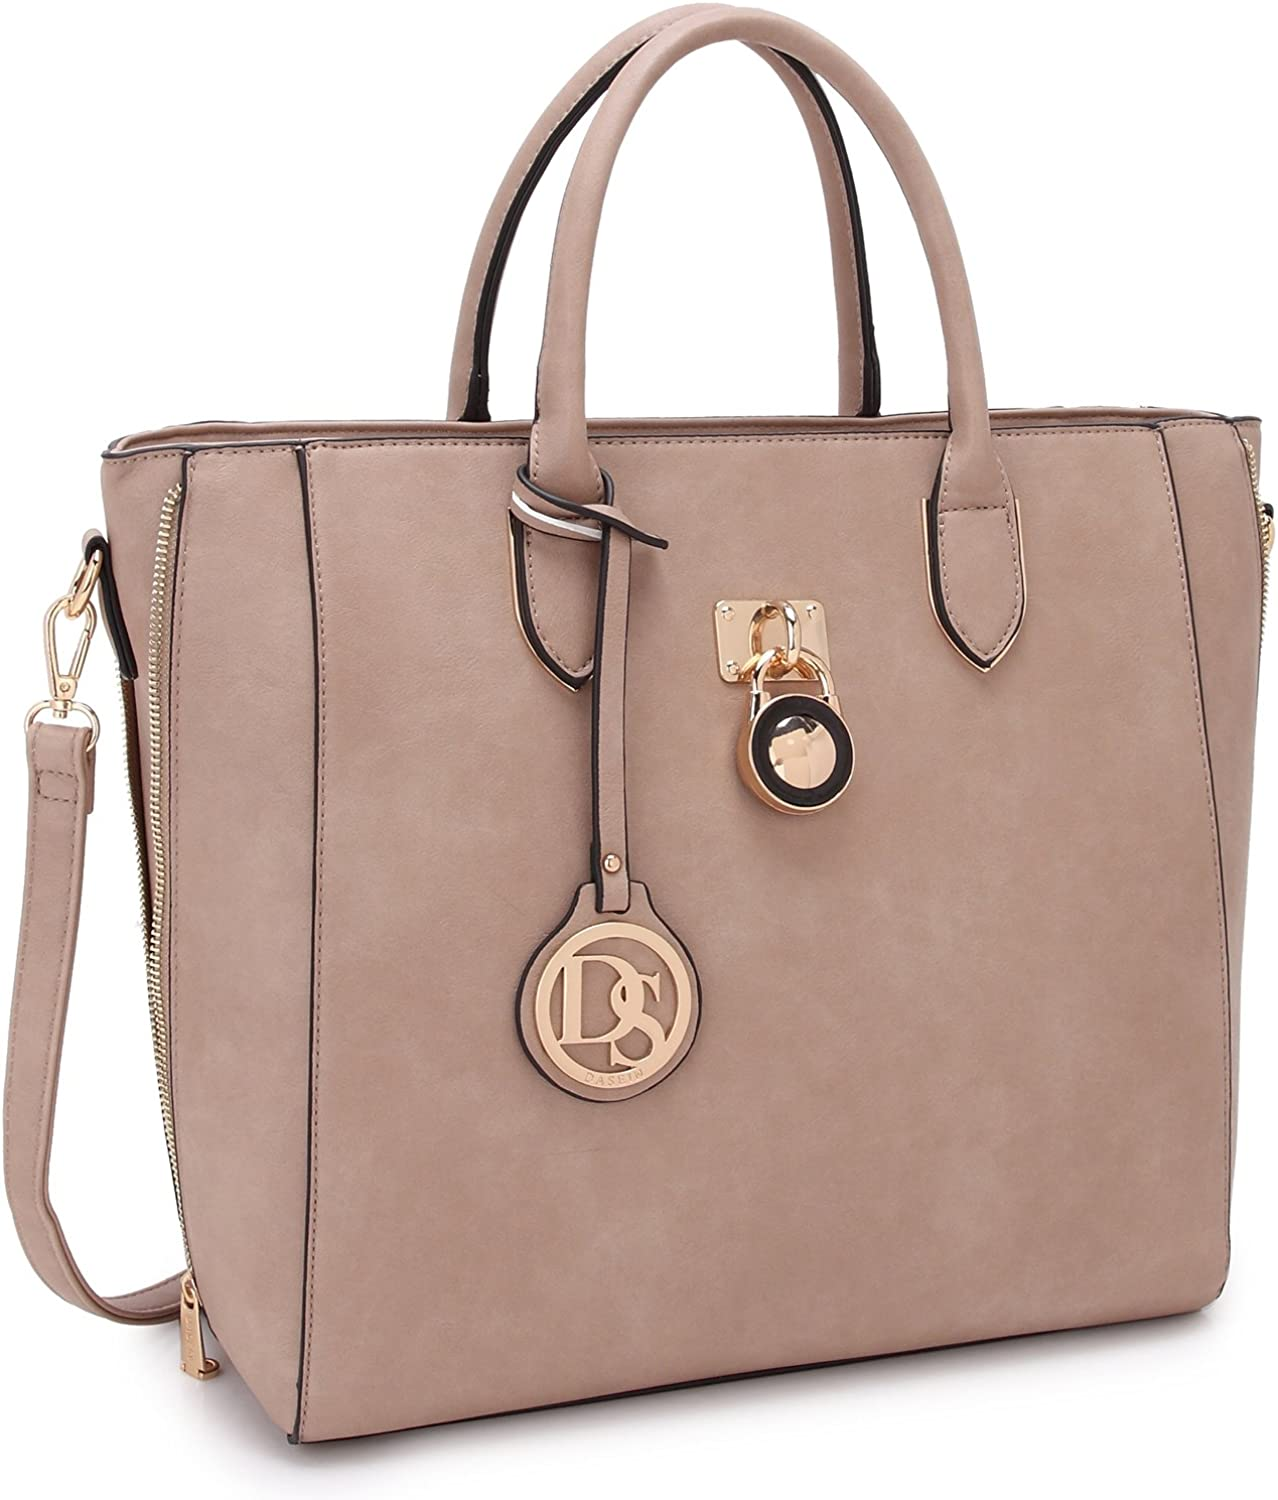 DASEIN Women Handbags Purses Large Tote Shoulder Bag Top Handle Satchel Bag for Work